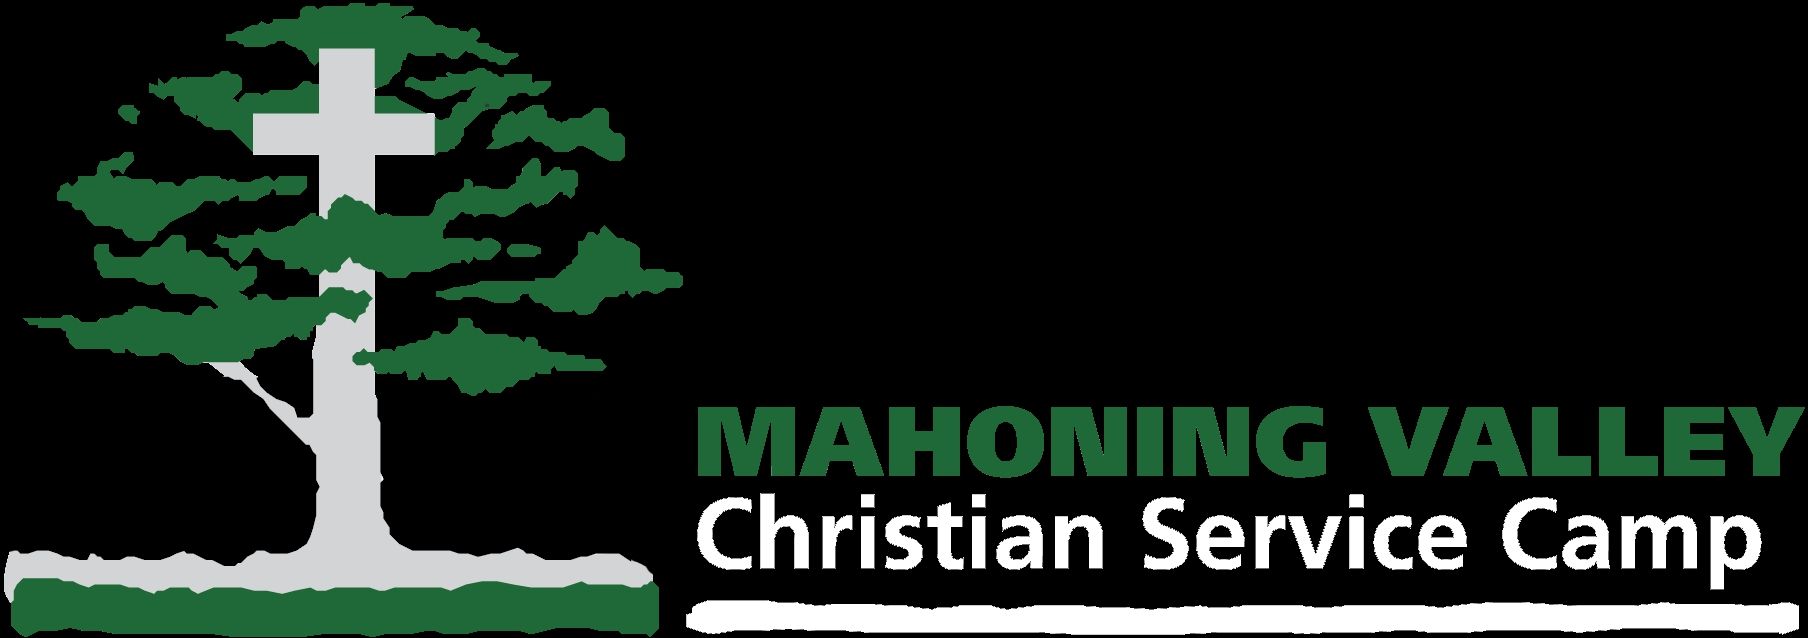 Logo for Mahoning Valley Christian Service Camp